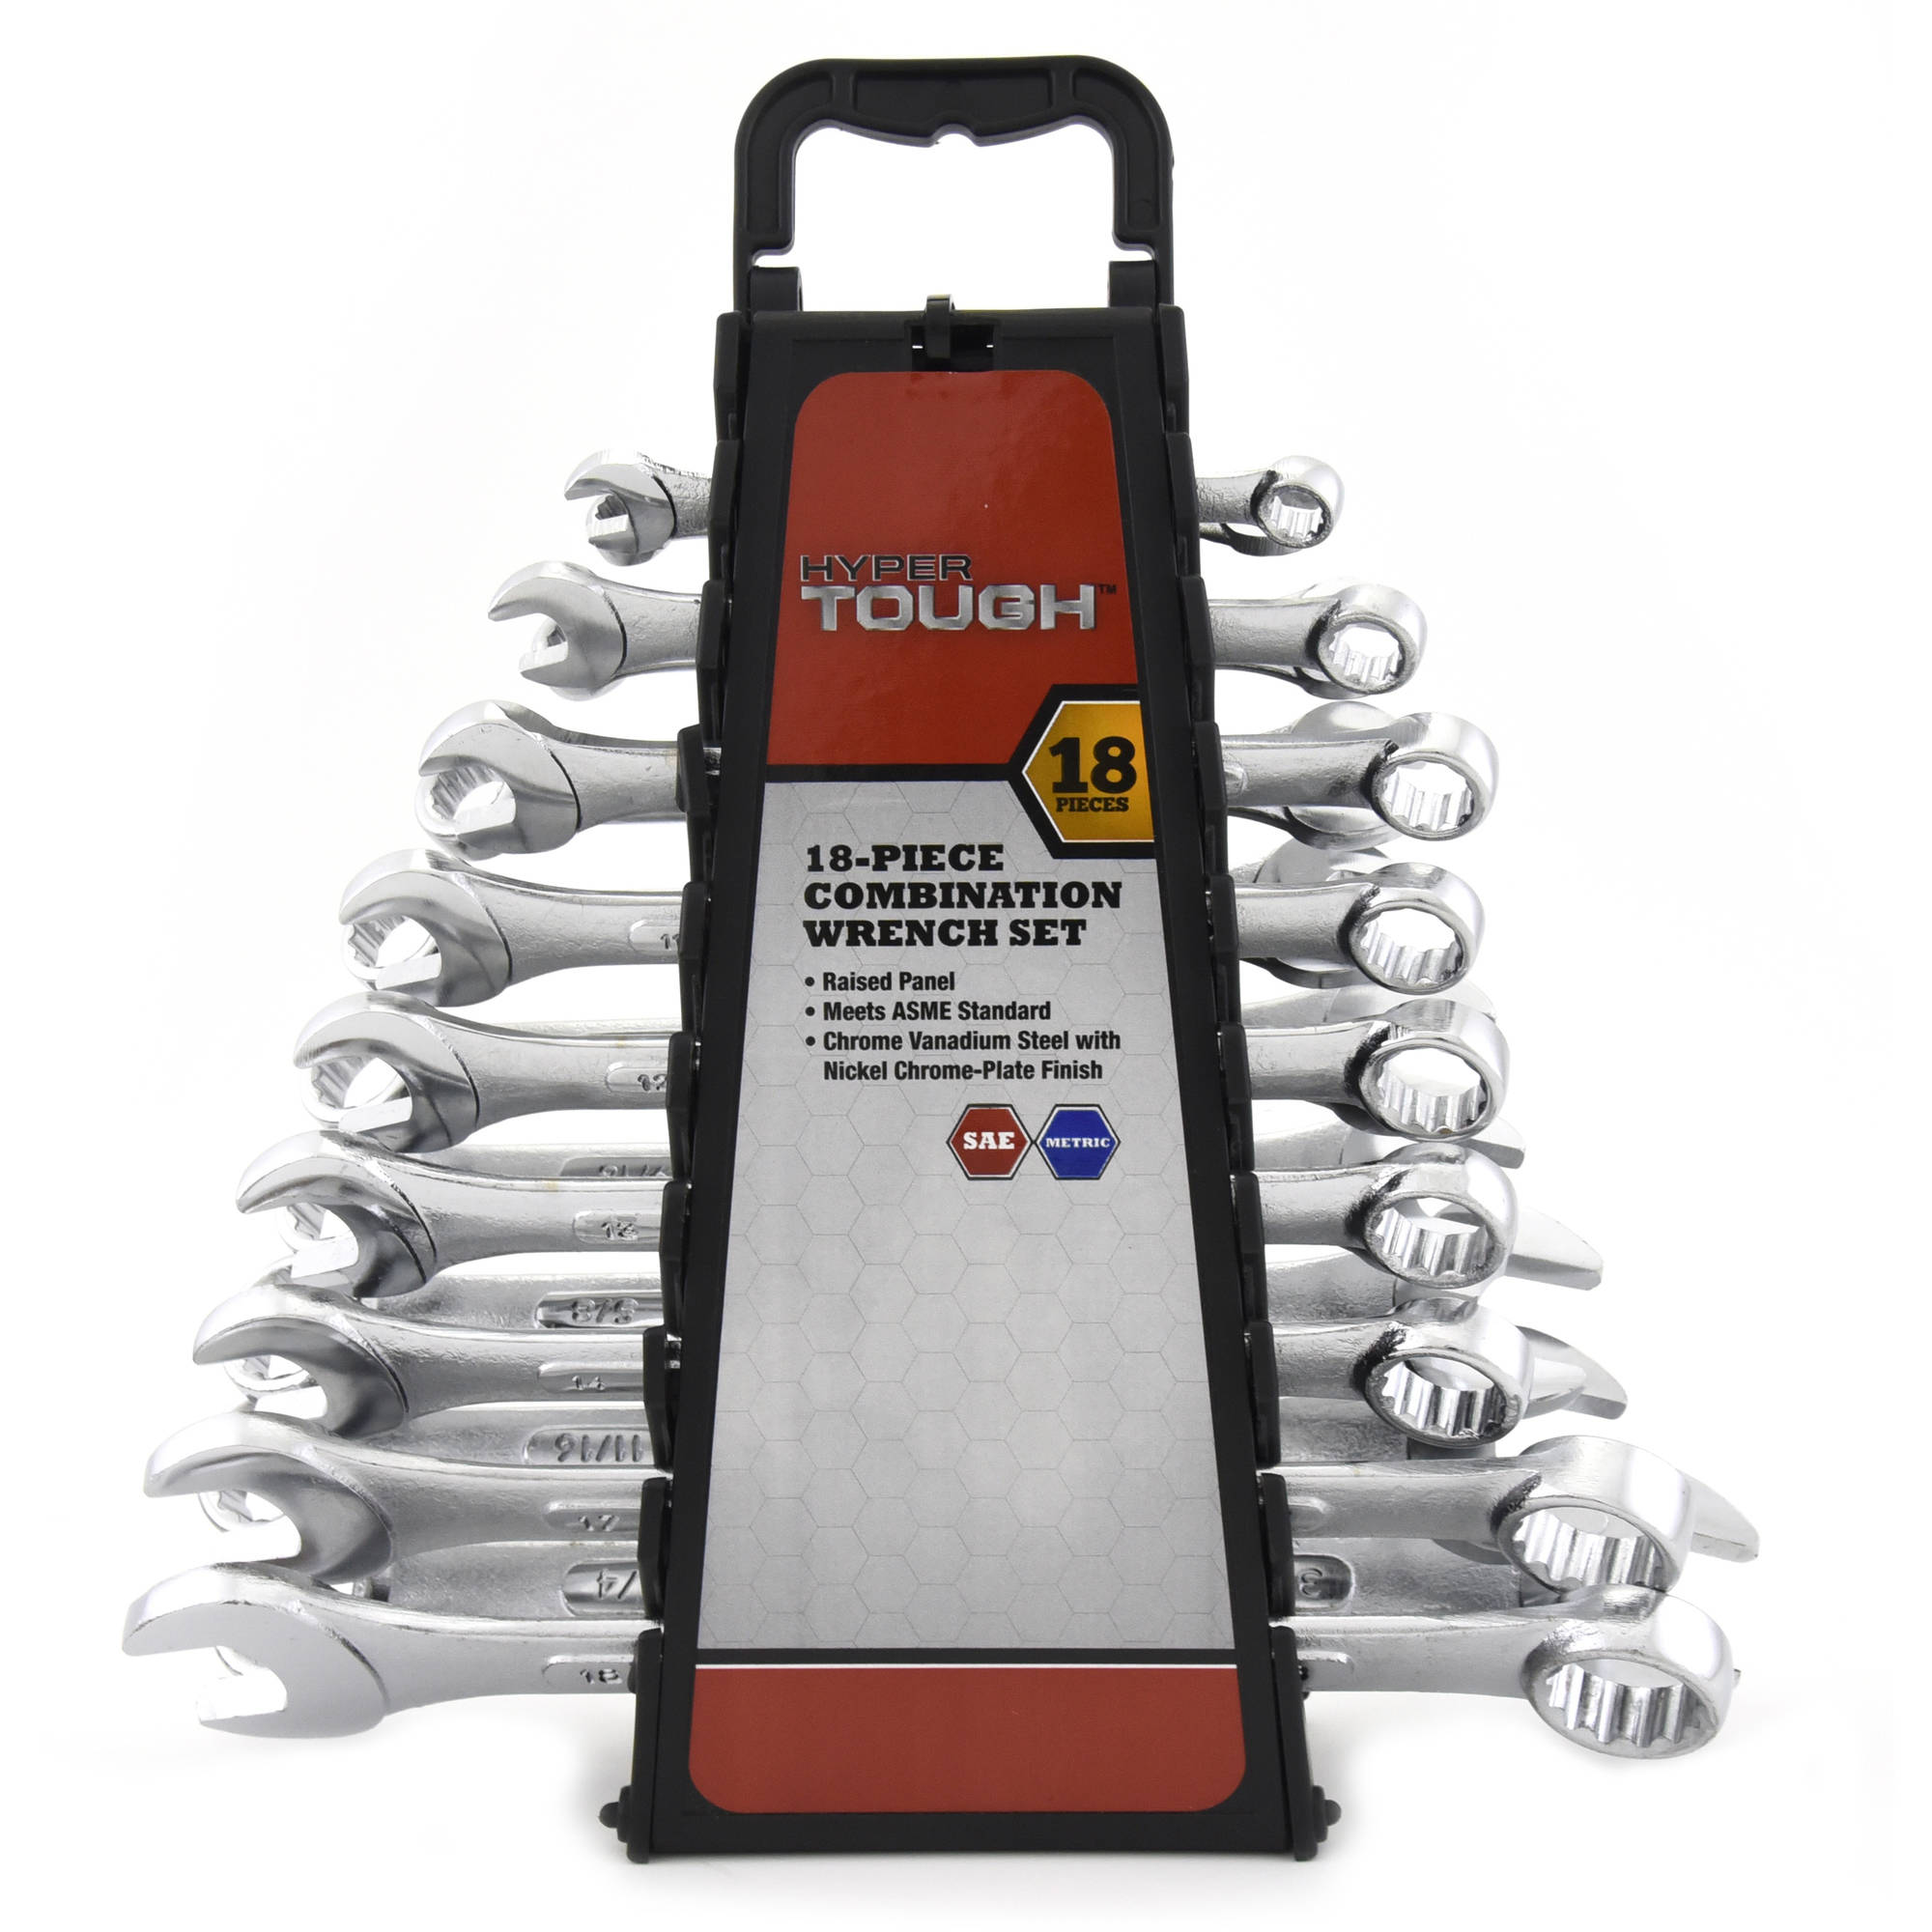 Details about Hyper Tough 18-Piece Combination Wrench Set Garage Mechanic  Steel Tools Kit Case